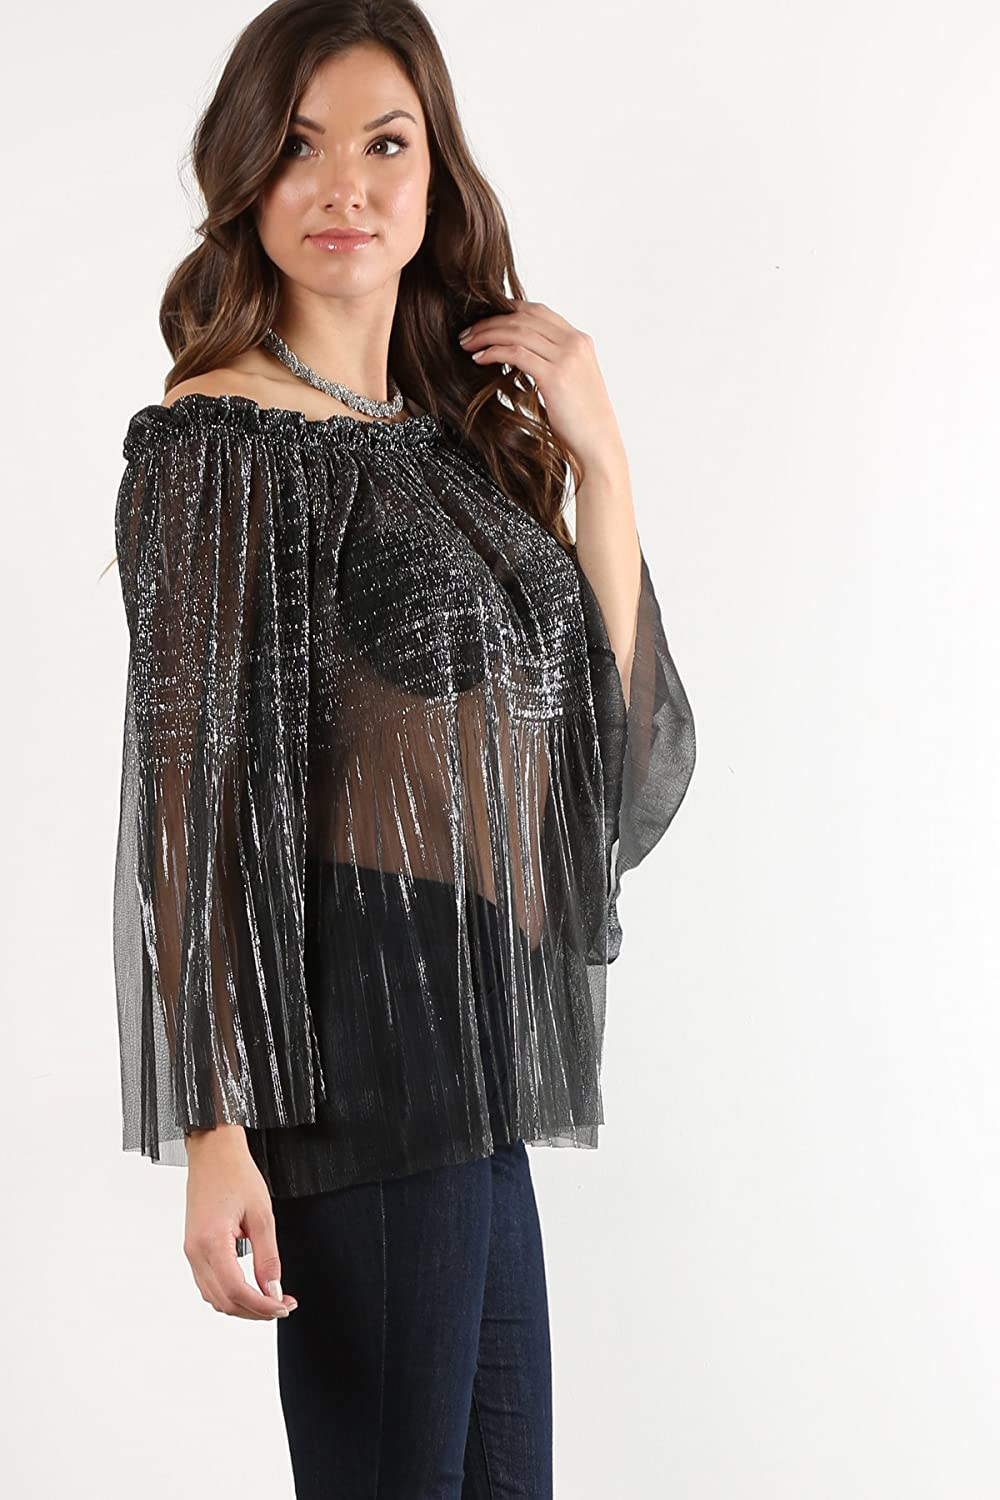 d492c6b5c92592 MeshMe Womens Jesse - Black Silver Sparkly Sparkle Shiny Metallic Classy  Fancy Pleated Strapless Off Shoulder Shimmer Elegant Tinsel Sheer See  Through Long ...